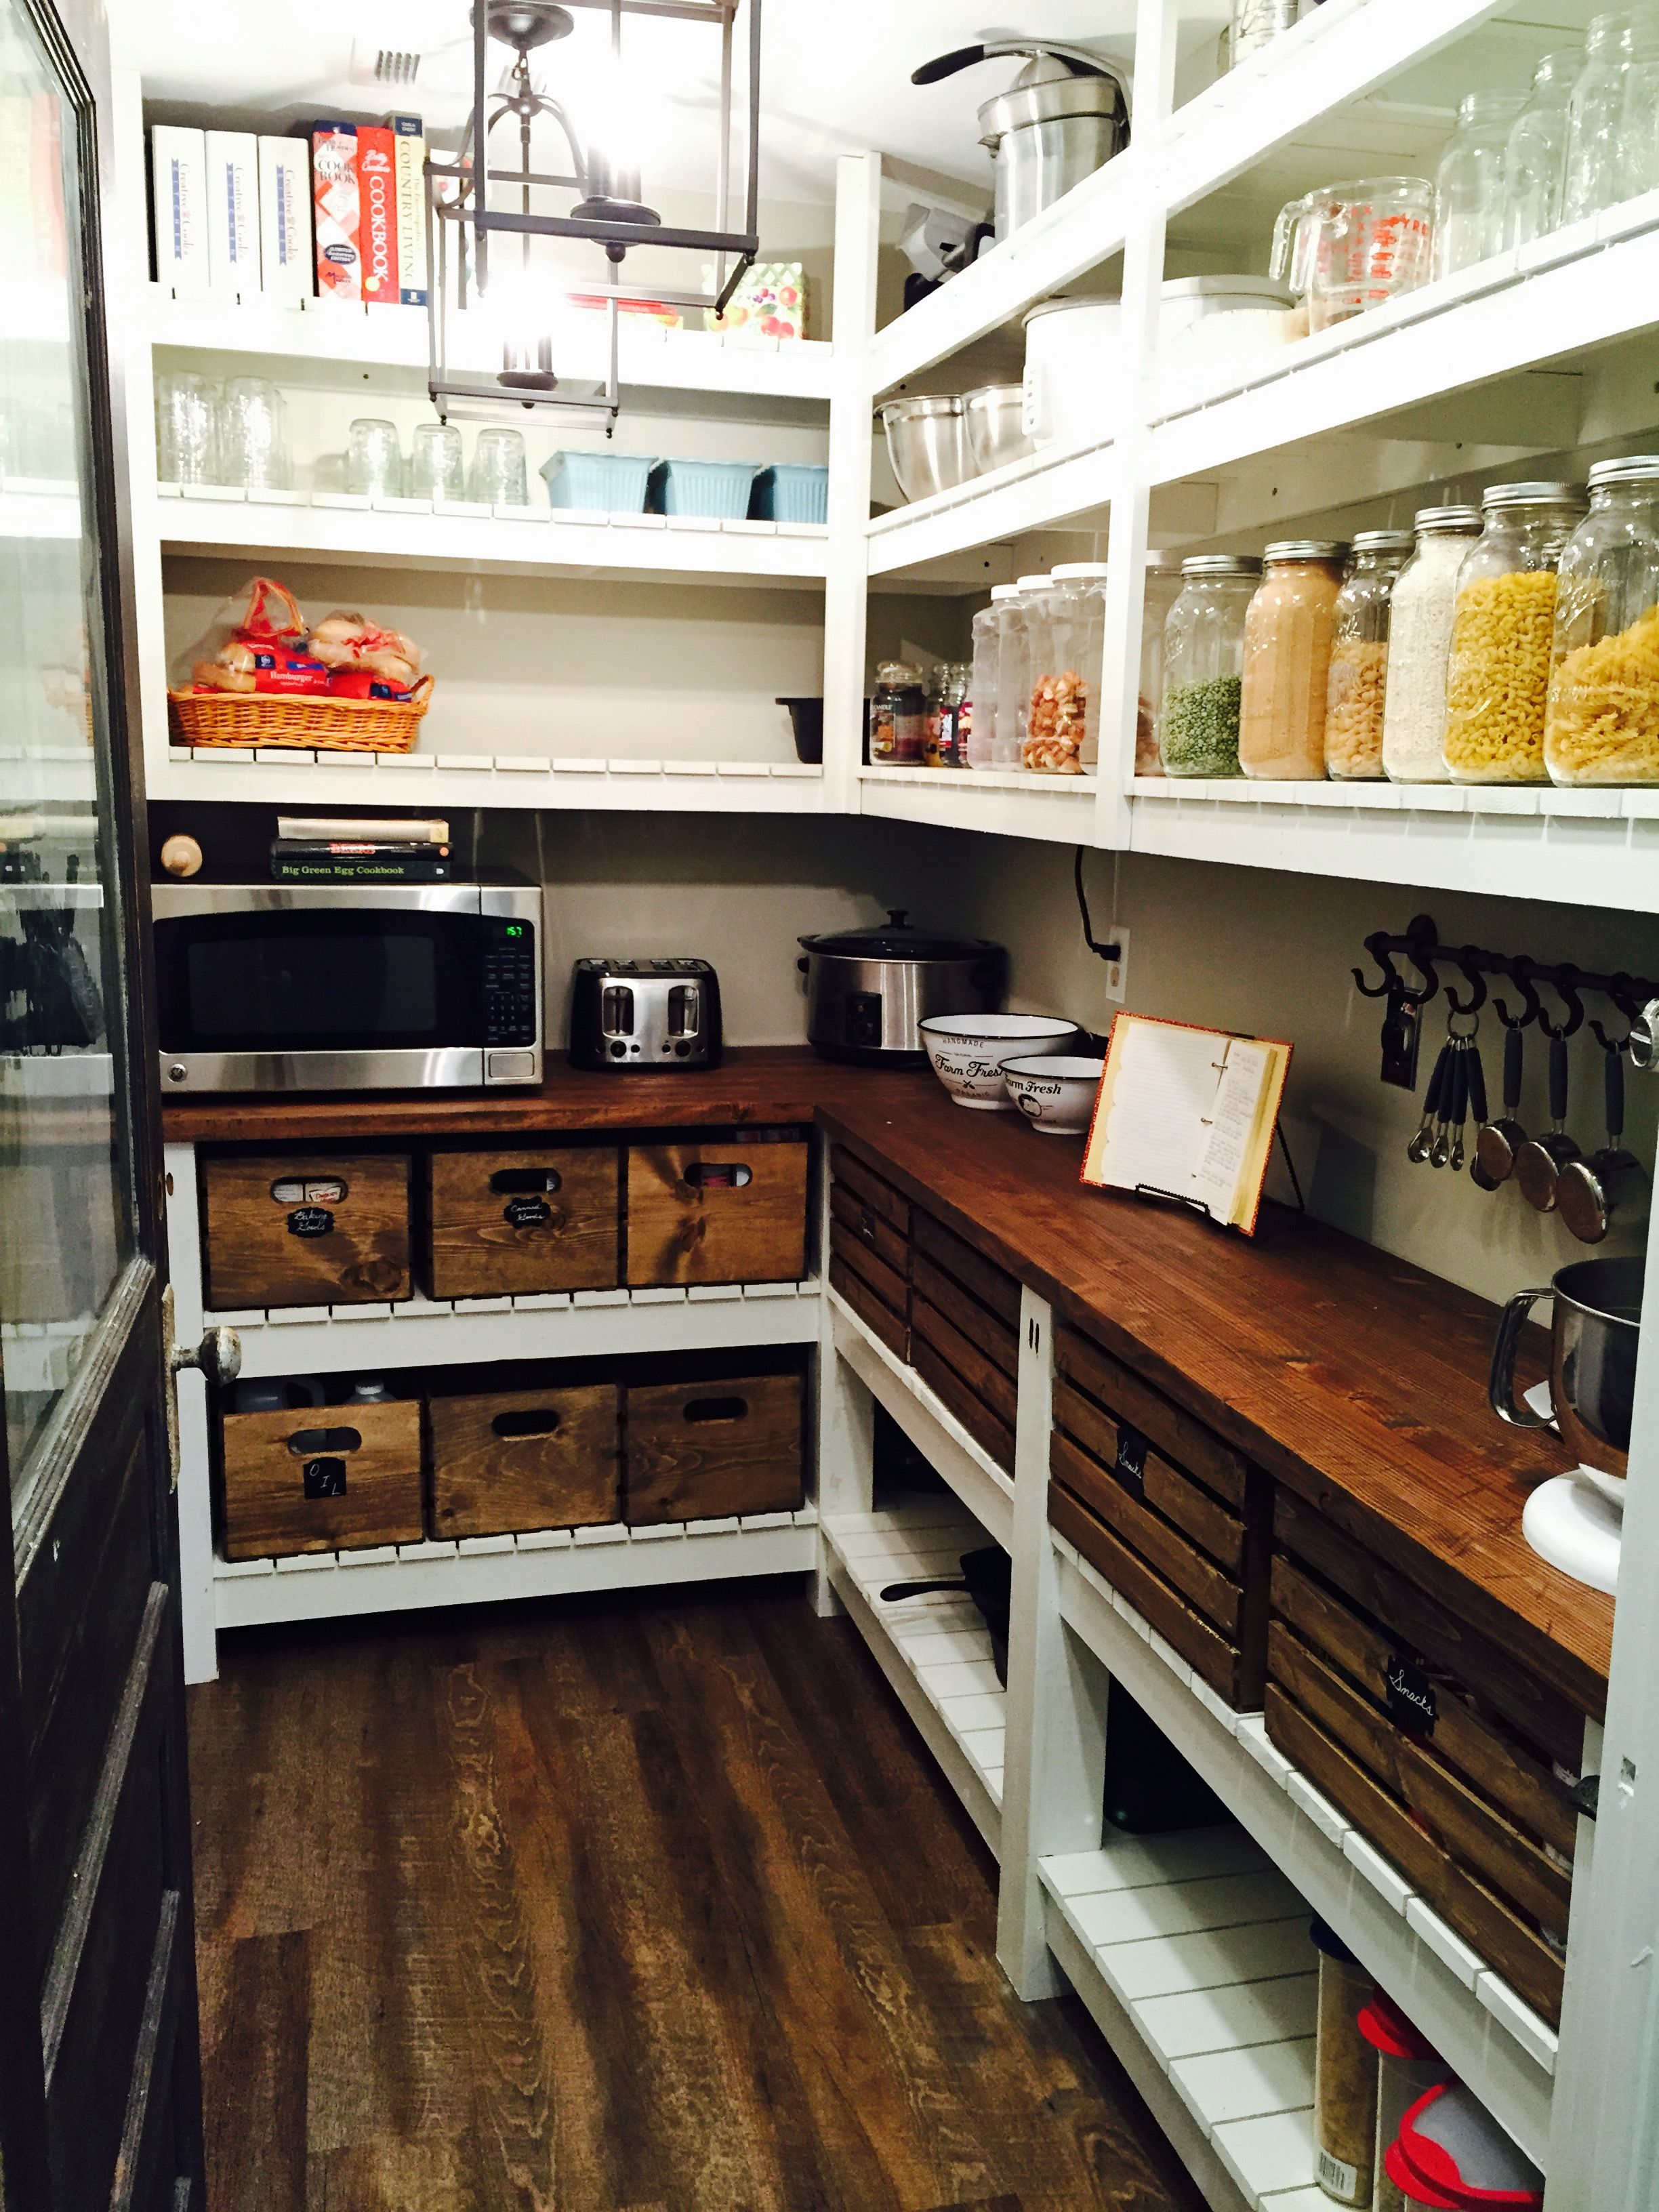 We Designed And Built This Pantry To Look Like It Belonged In An Old Fashioned Farmhouse